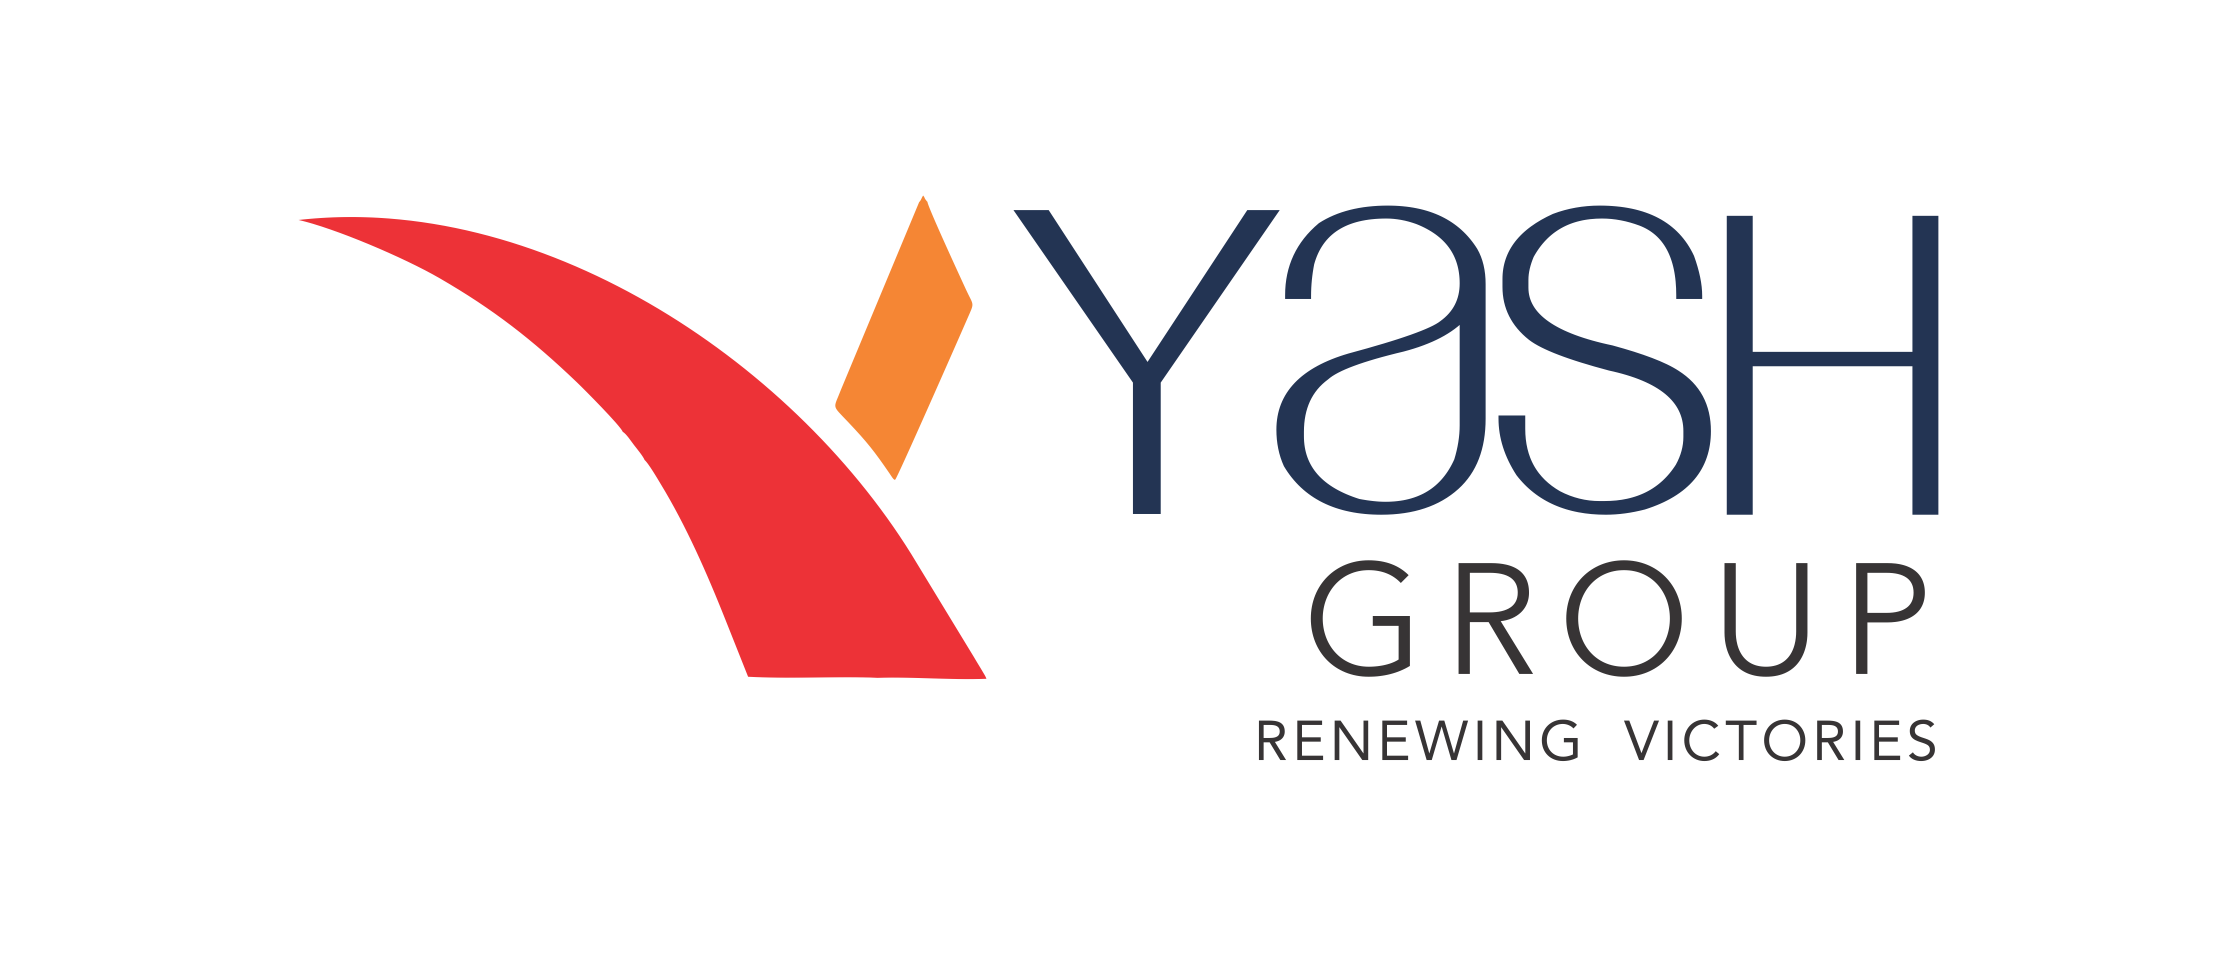 The Yash Group - Renewing Victories